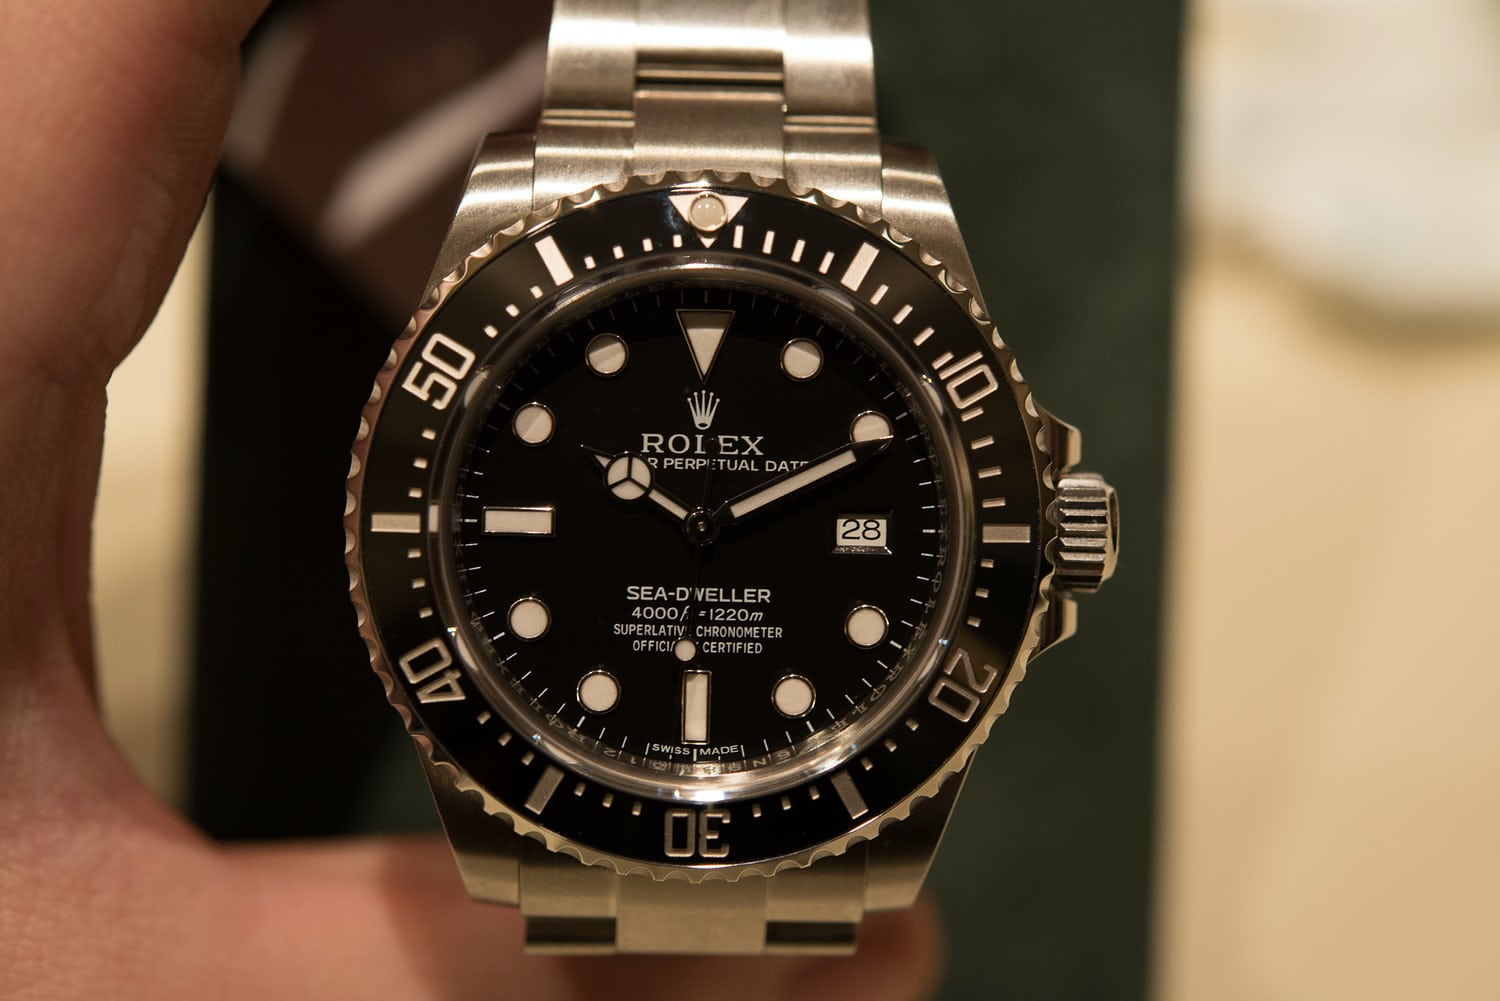 Hands On With The New Rolex Sea Dweller 4000 Currently In Stores